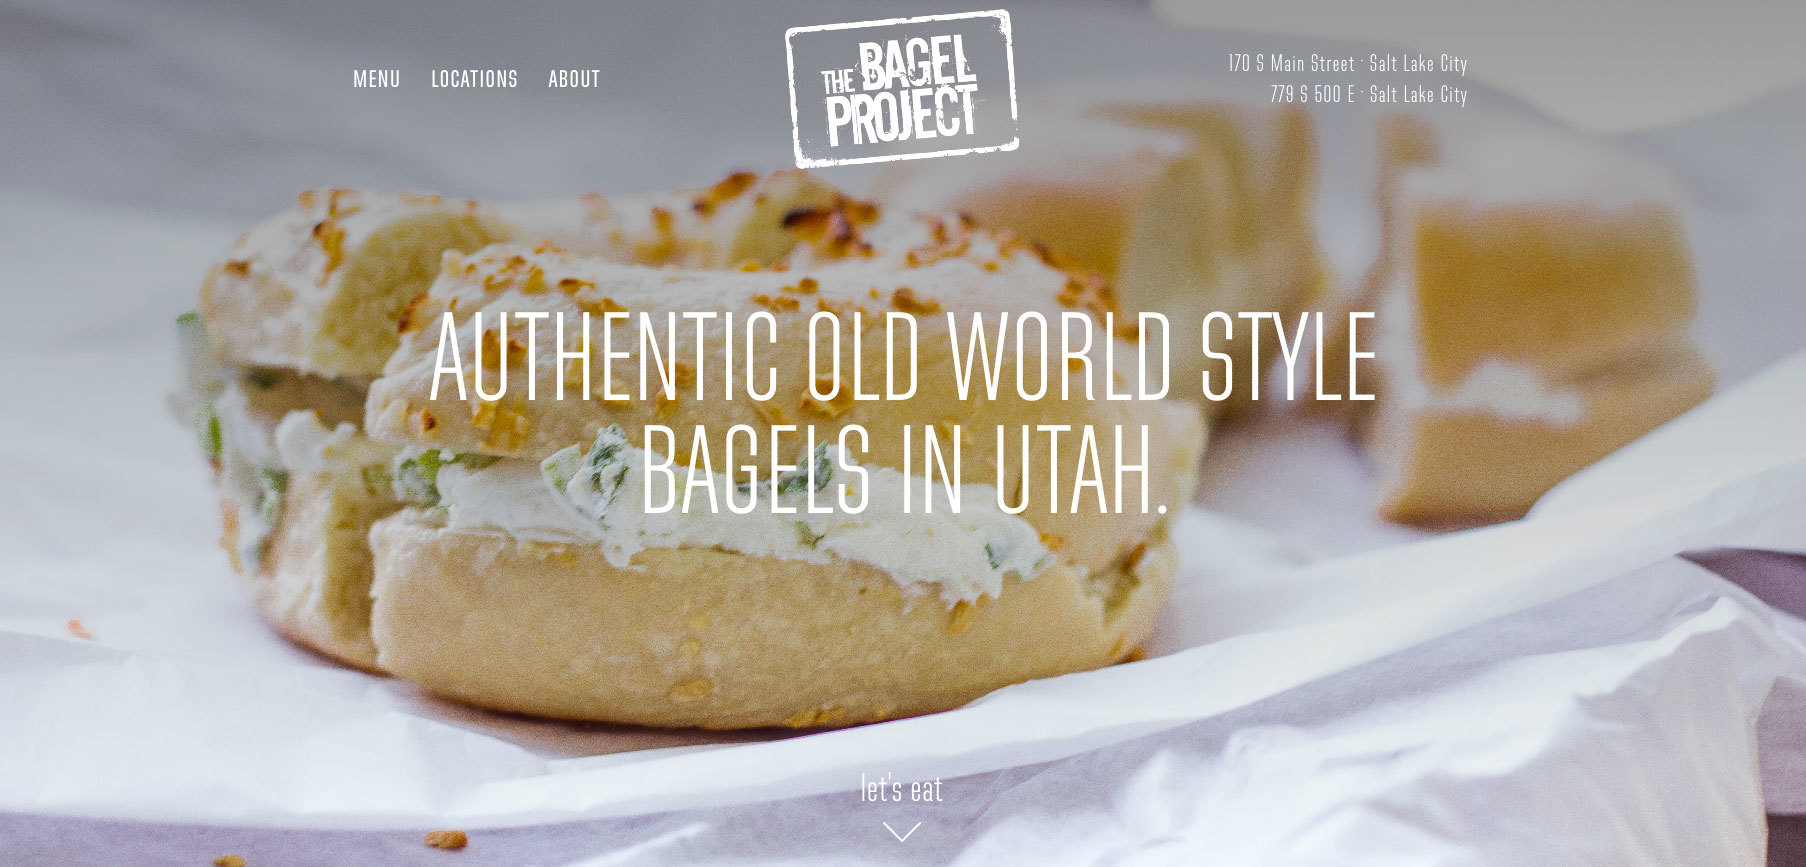 BagelProject